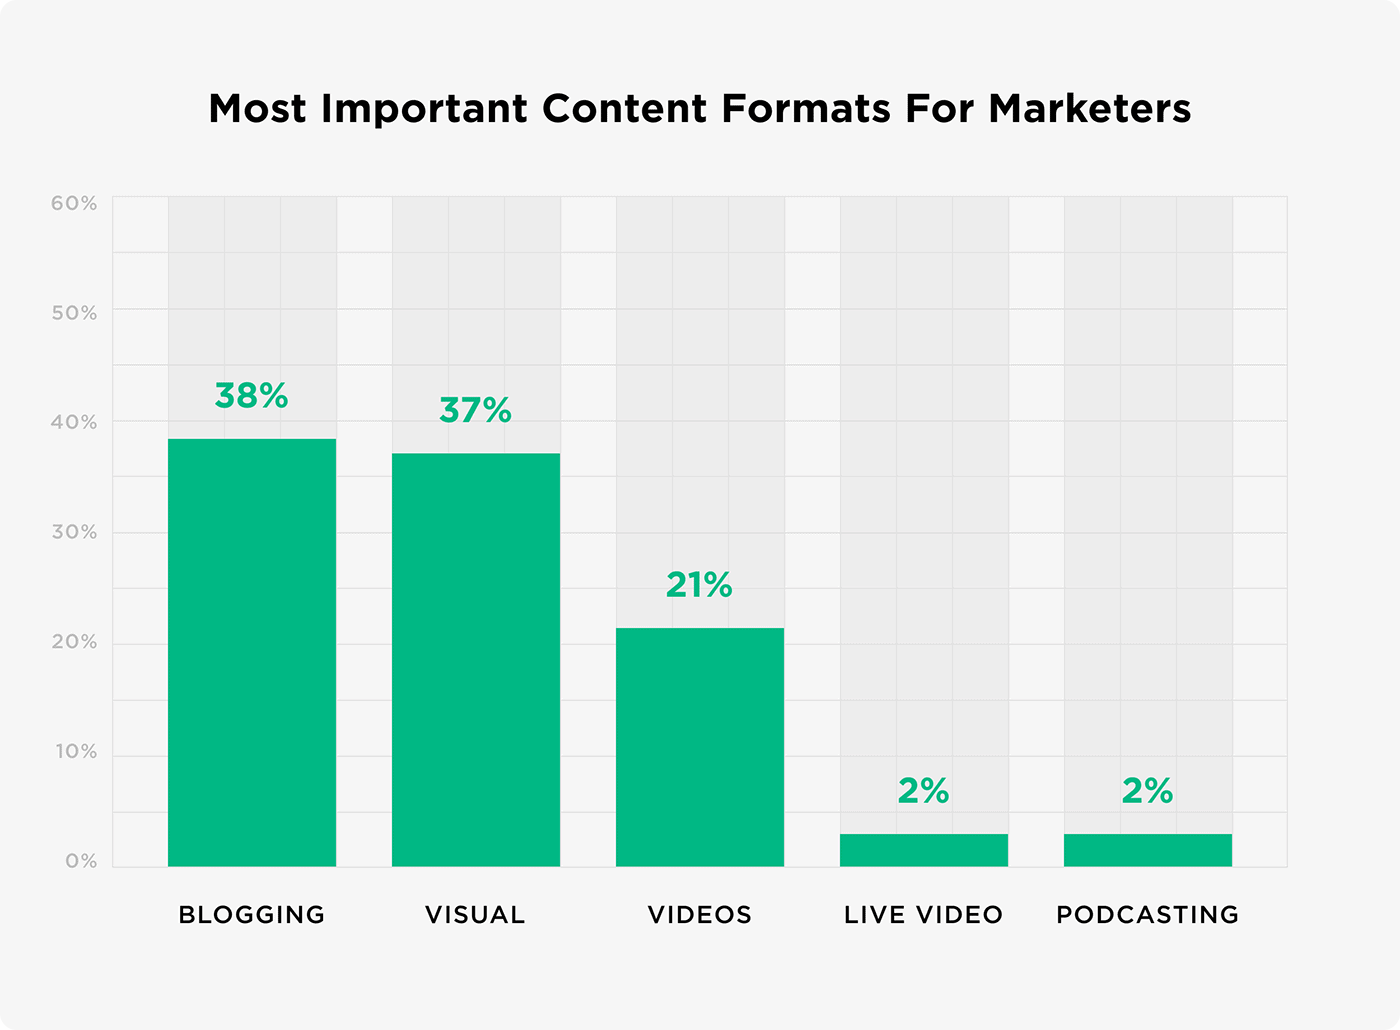 Most important content formats for marketers